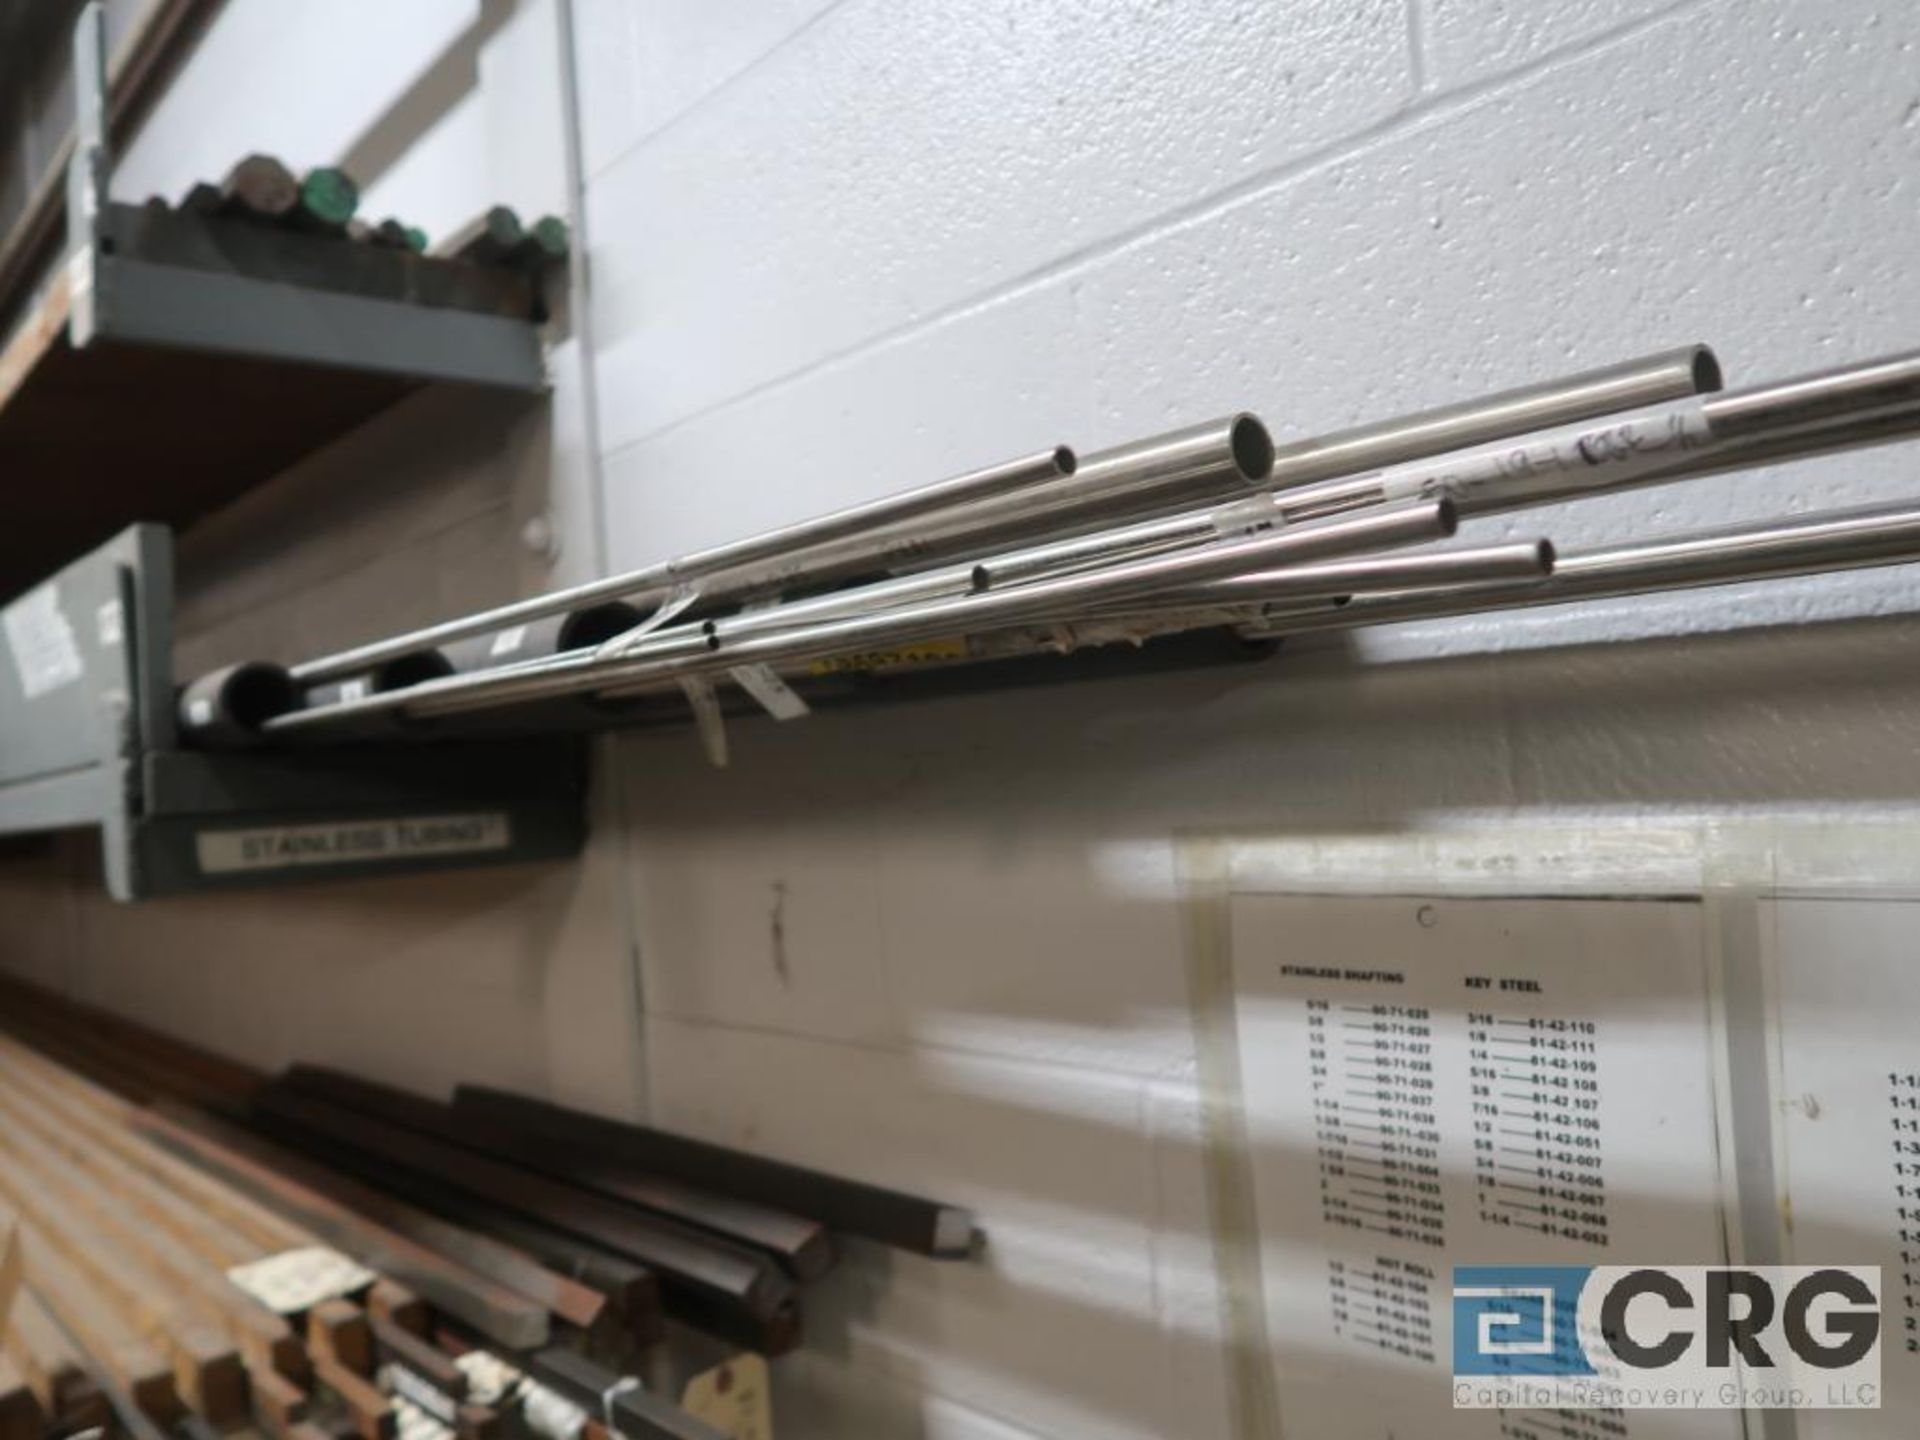 Wall mount rack with cold roll shaft, stainless tubing, key steel, and conduit pipe (Store - Image 3 of 7